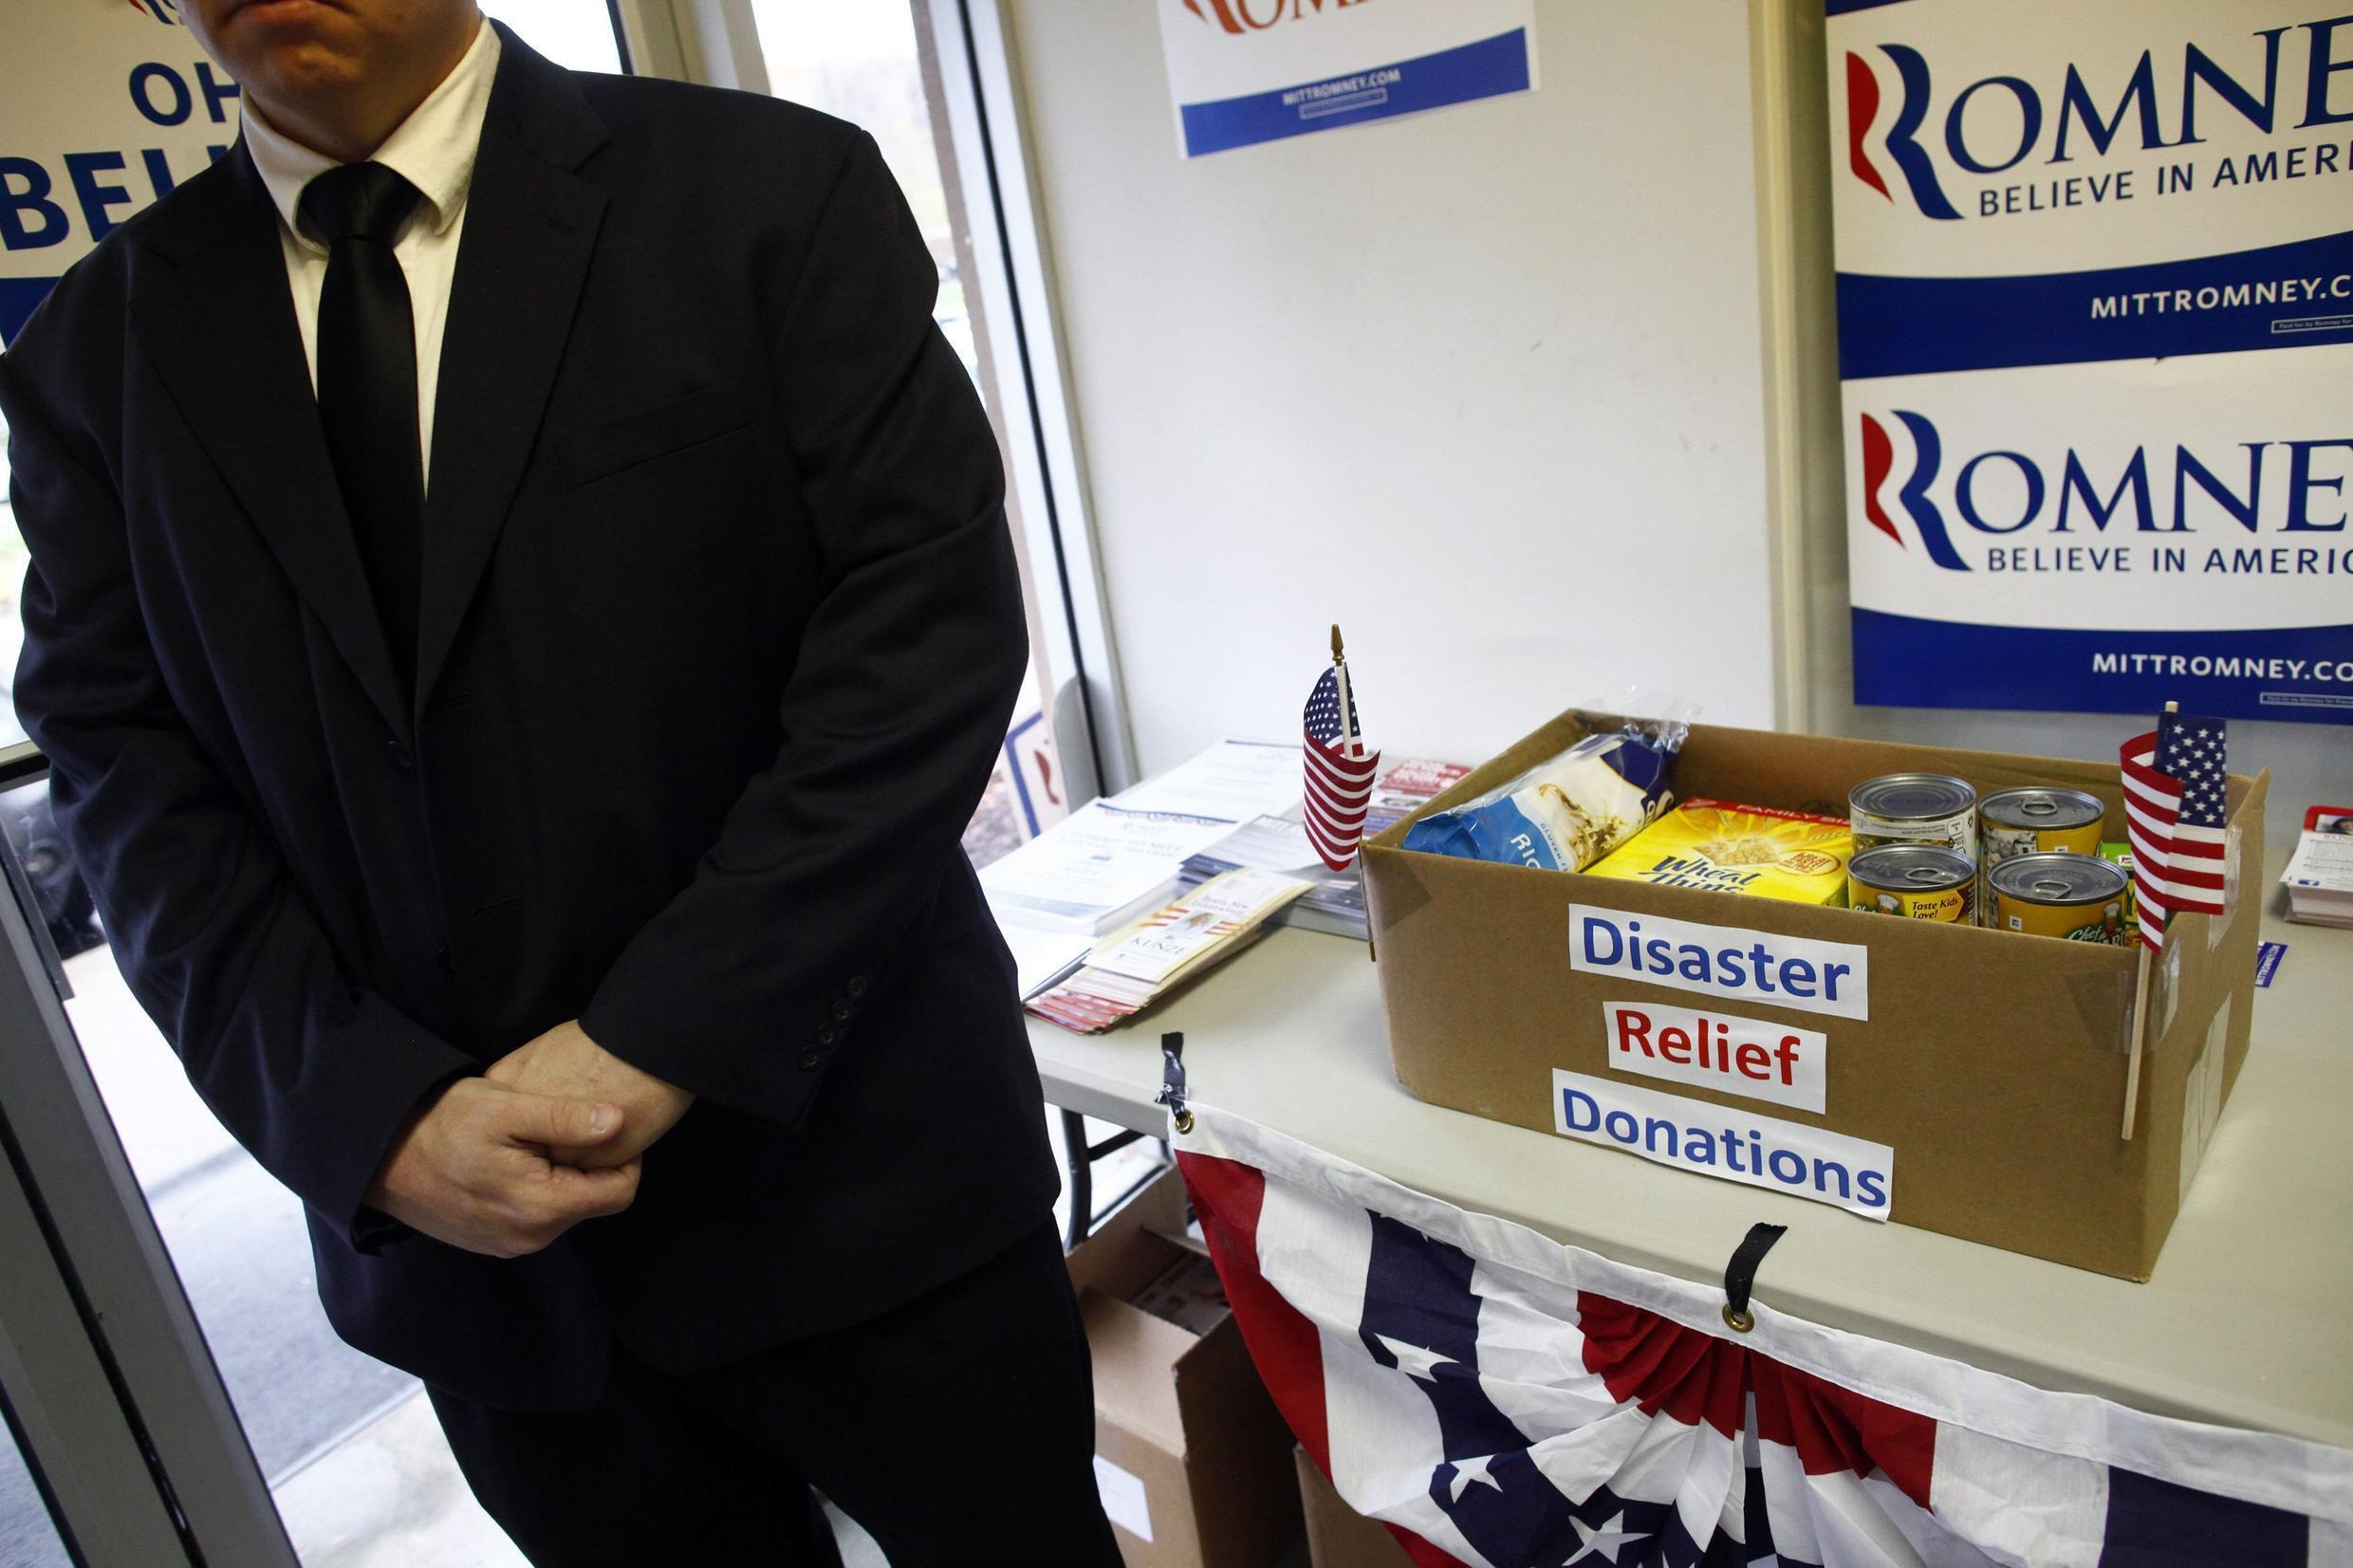 A box containing donations for disaster relief for Hurricane Sandy victims at the state's campaign headquarters for Mitt Romney